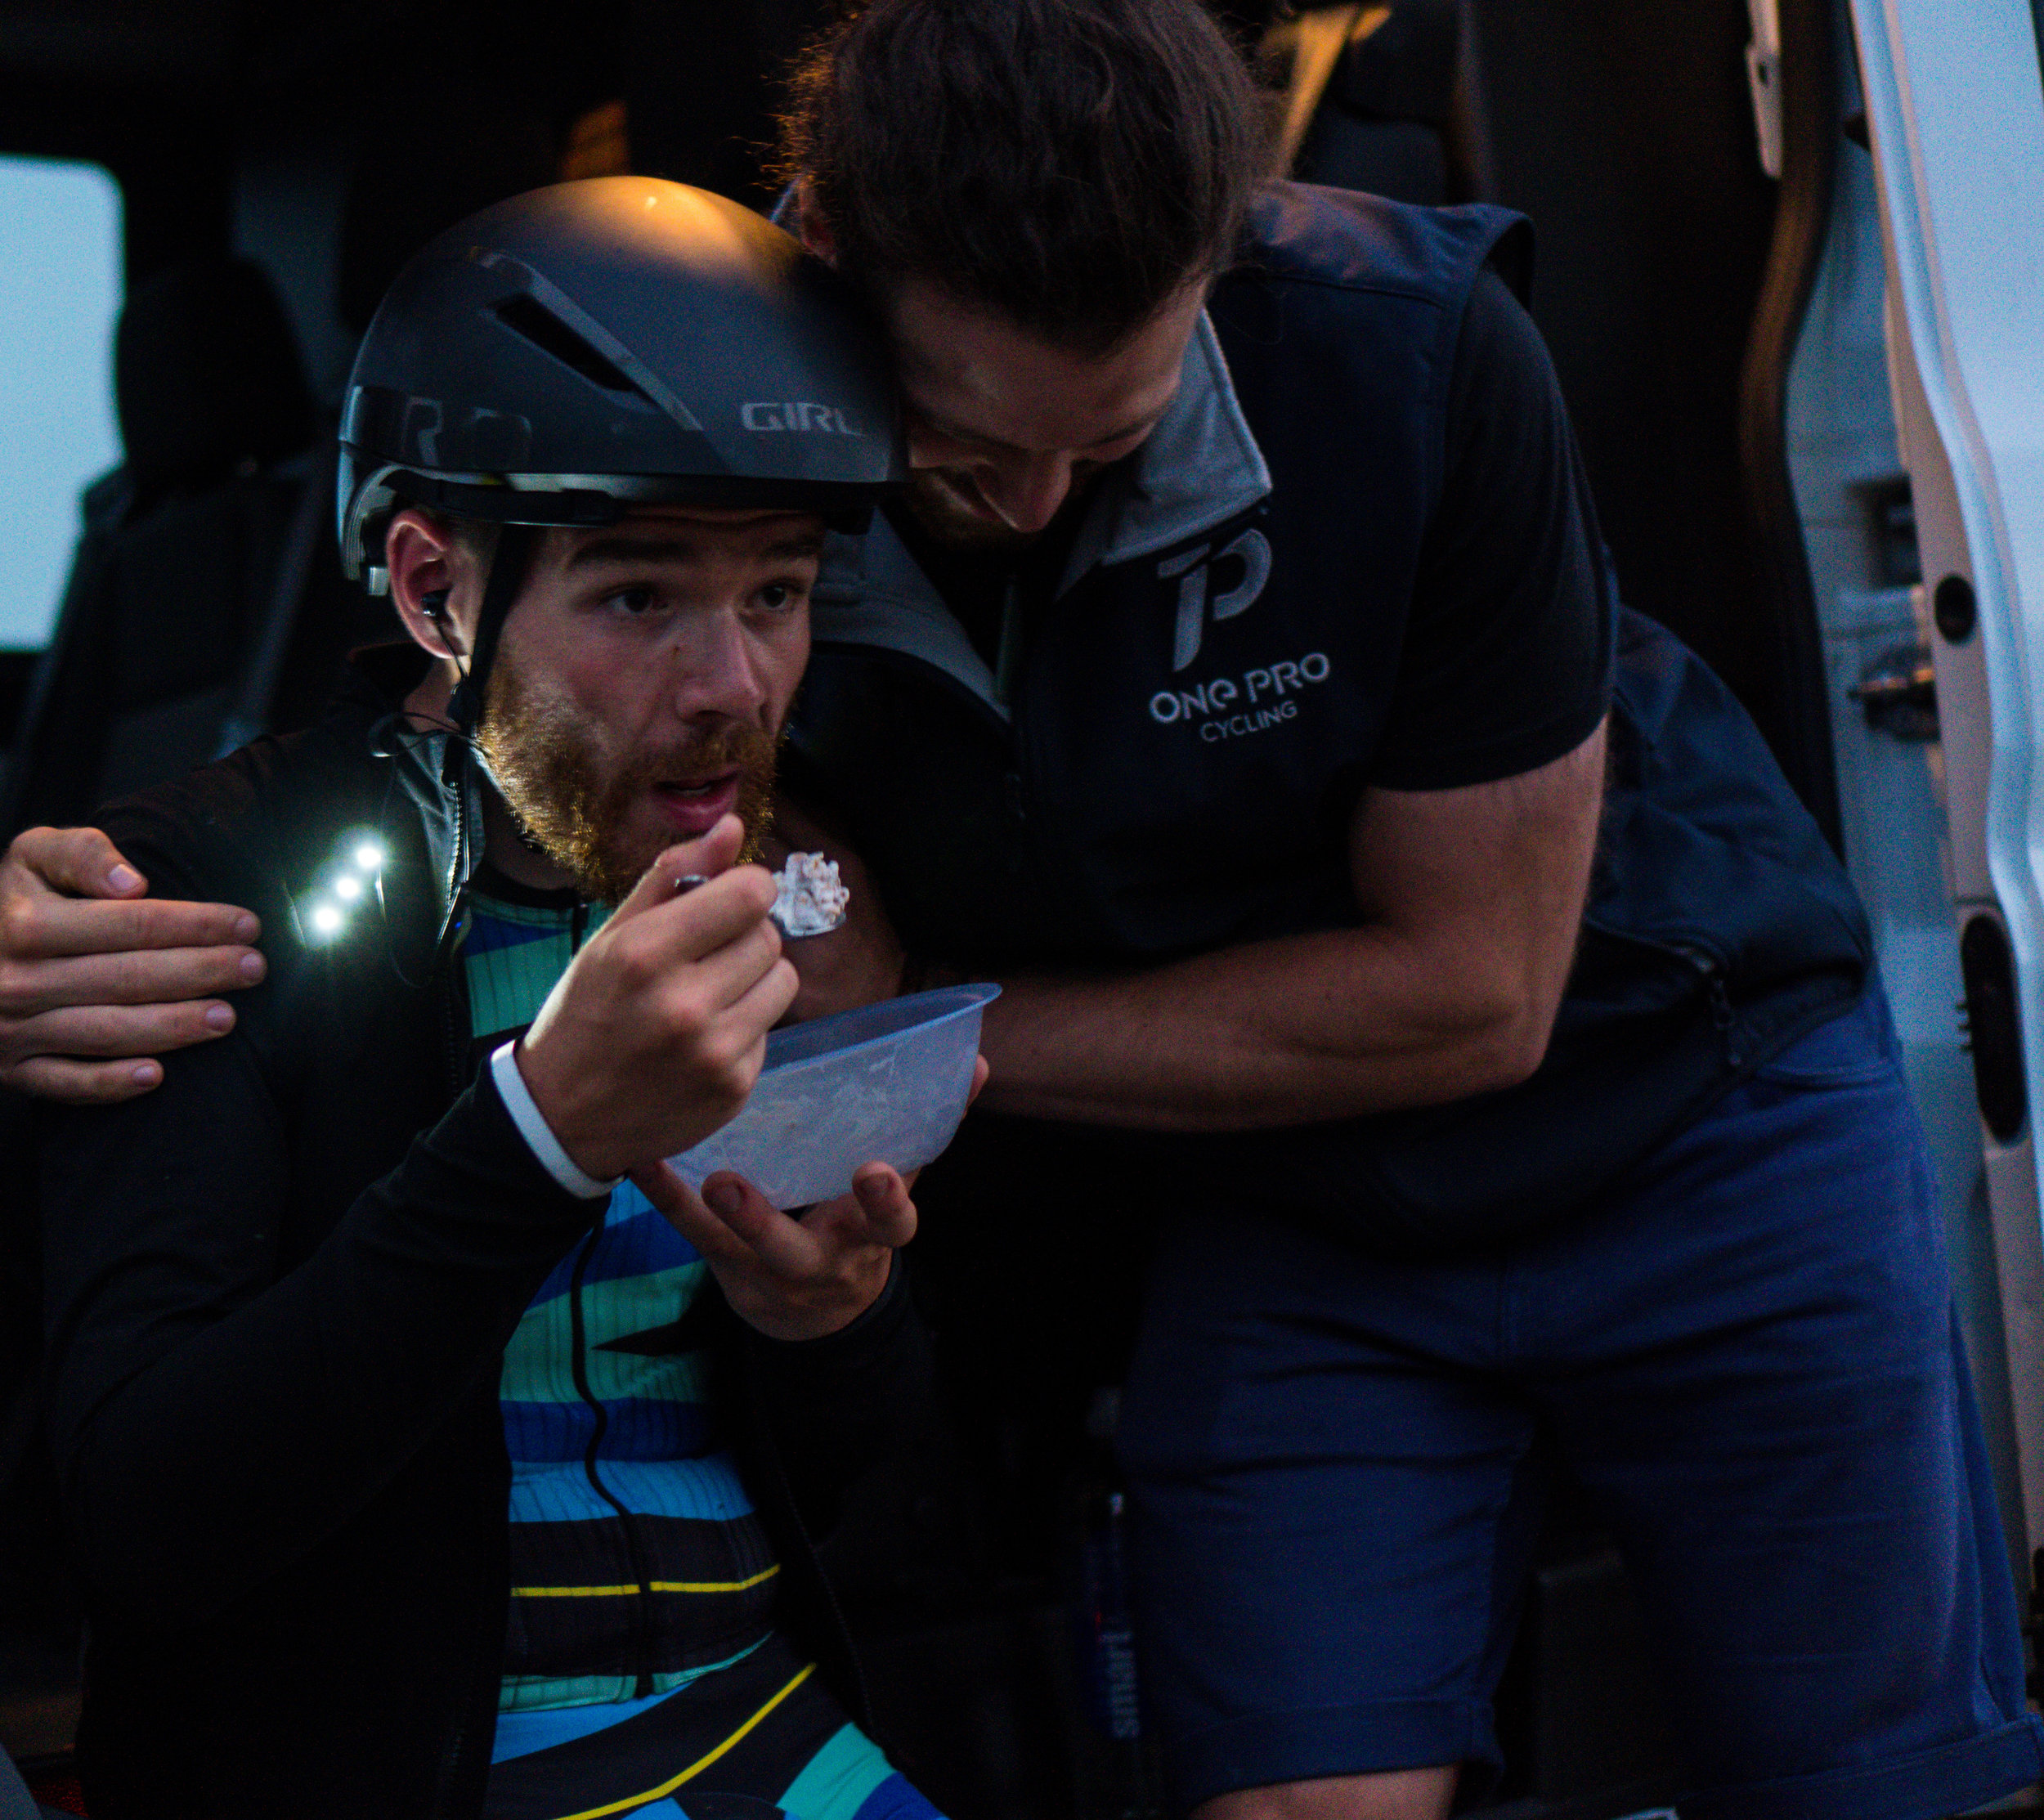 Will definitely looked after me and kept me fuelled up during the race (as well as provided cuddles.